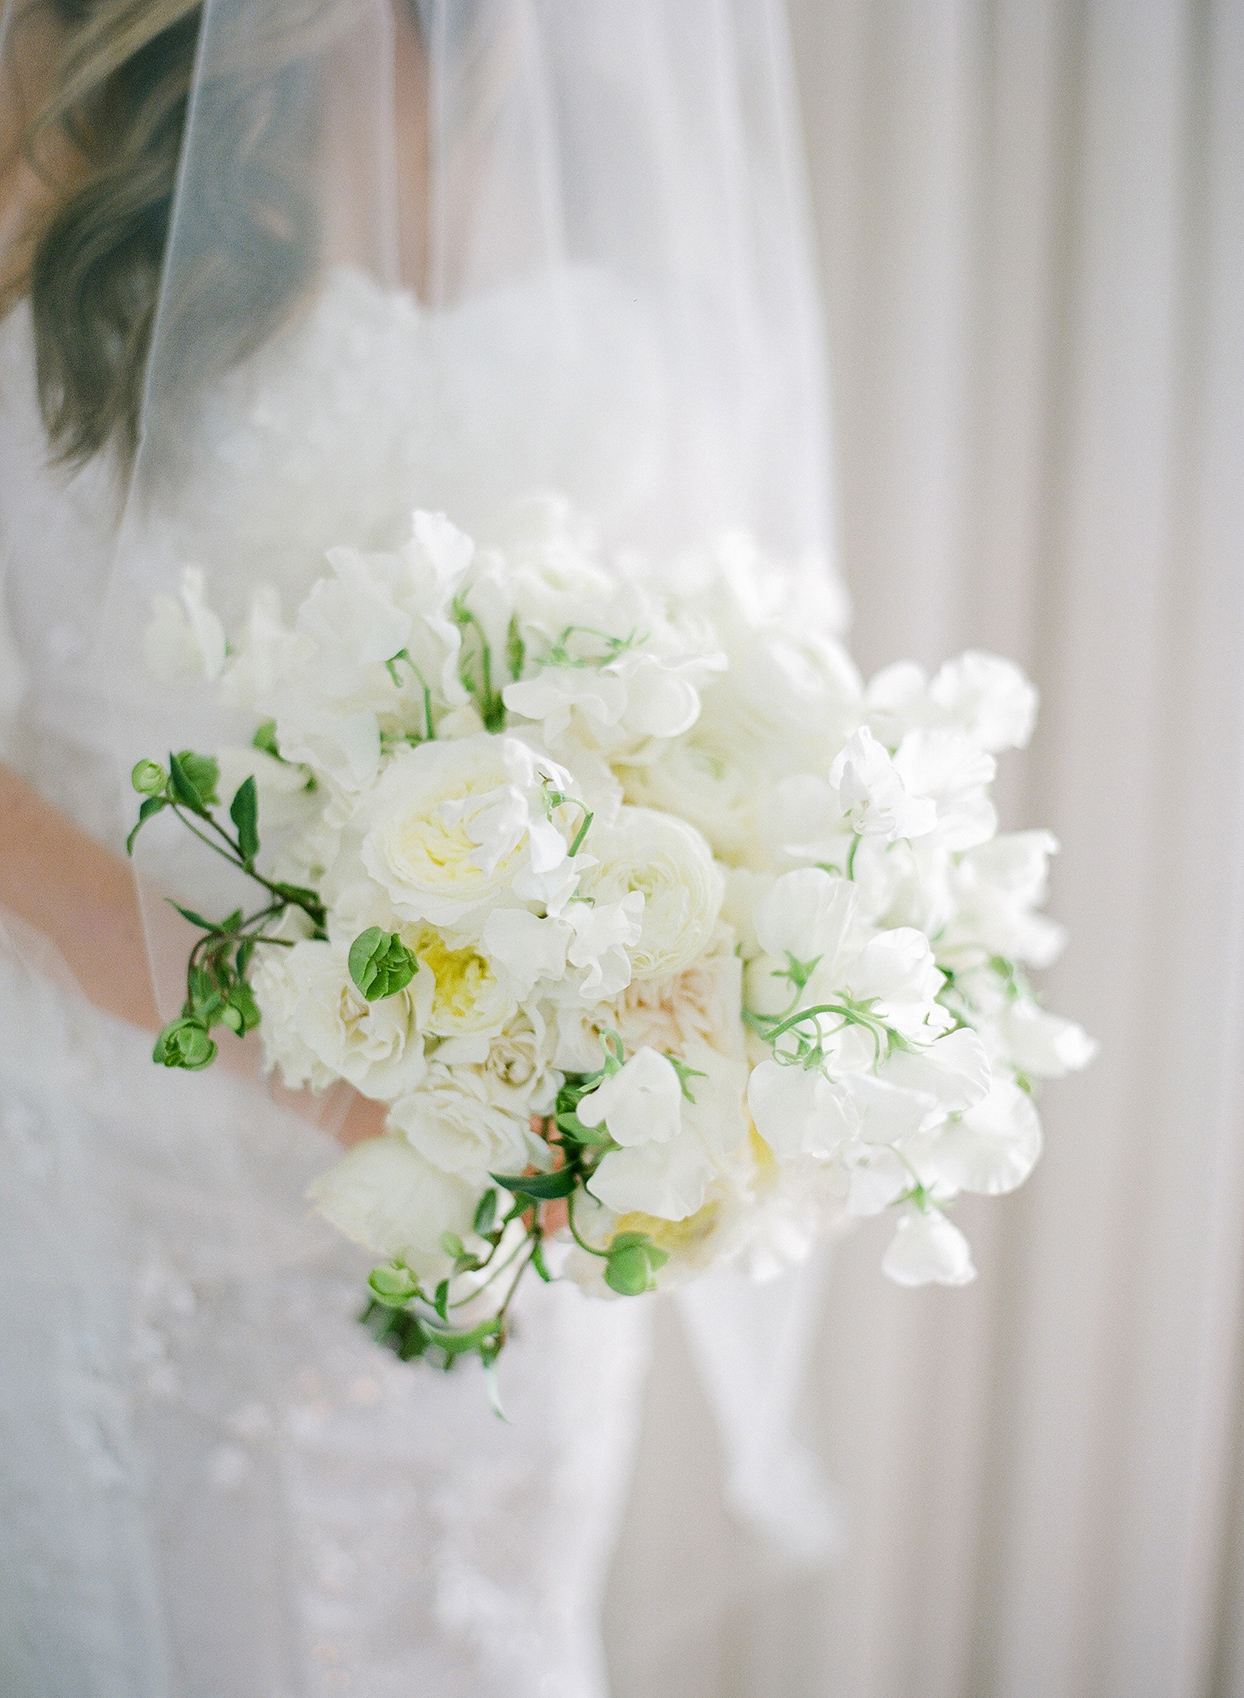 brittany brian wedding bride's white floral bouquet in her hands